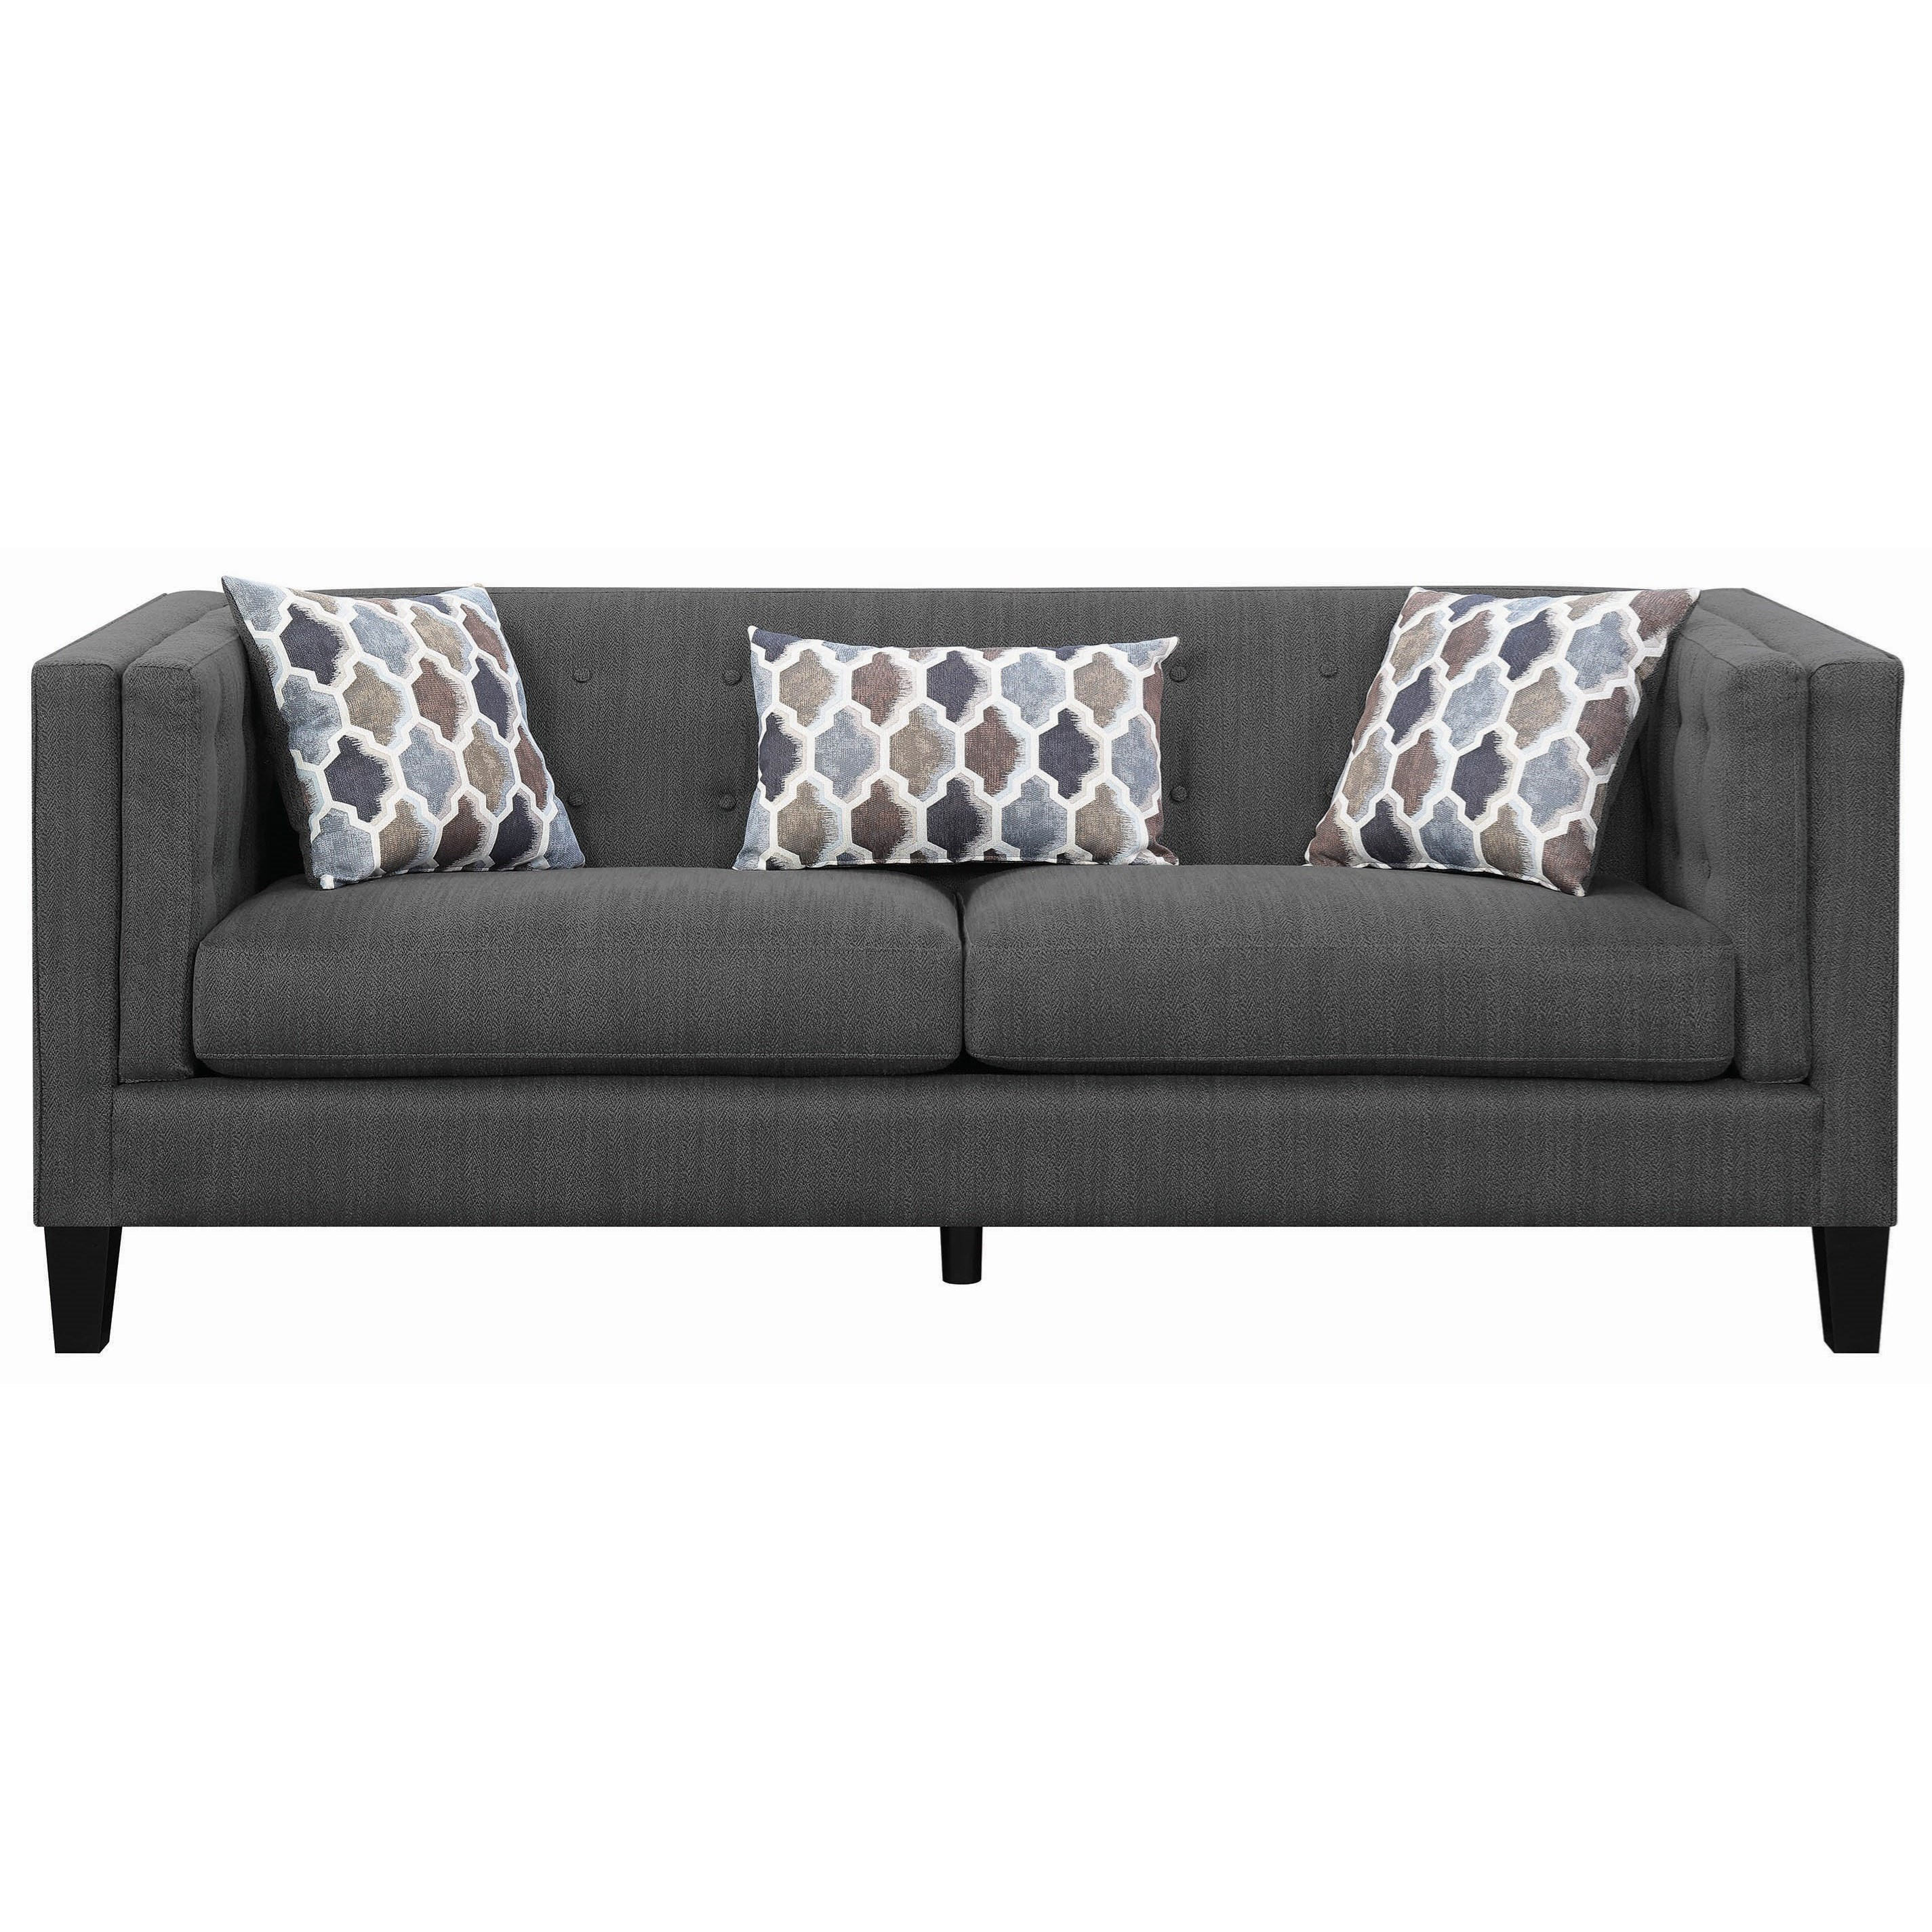 Modern Couch Sawyer Modern Sofa With Track Arms By Scott Living At Value City Furniture